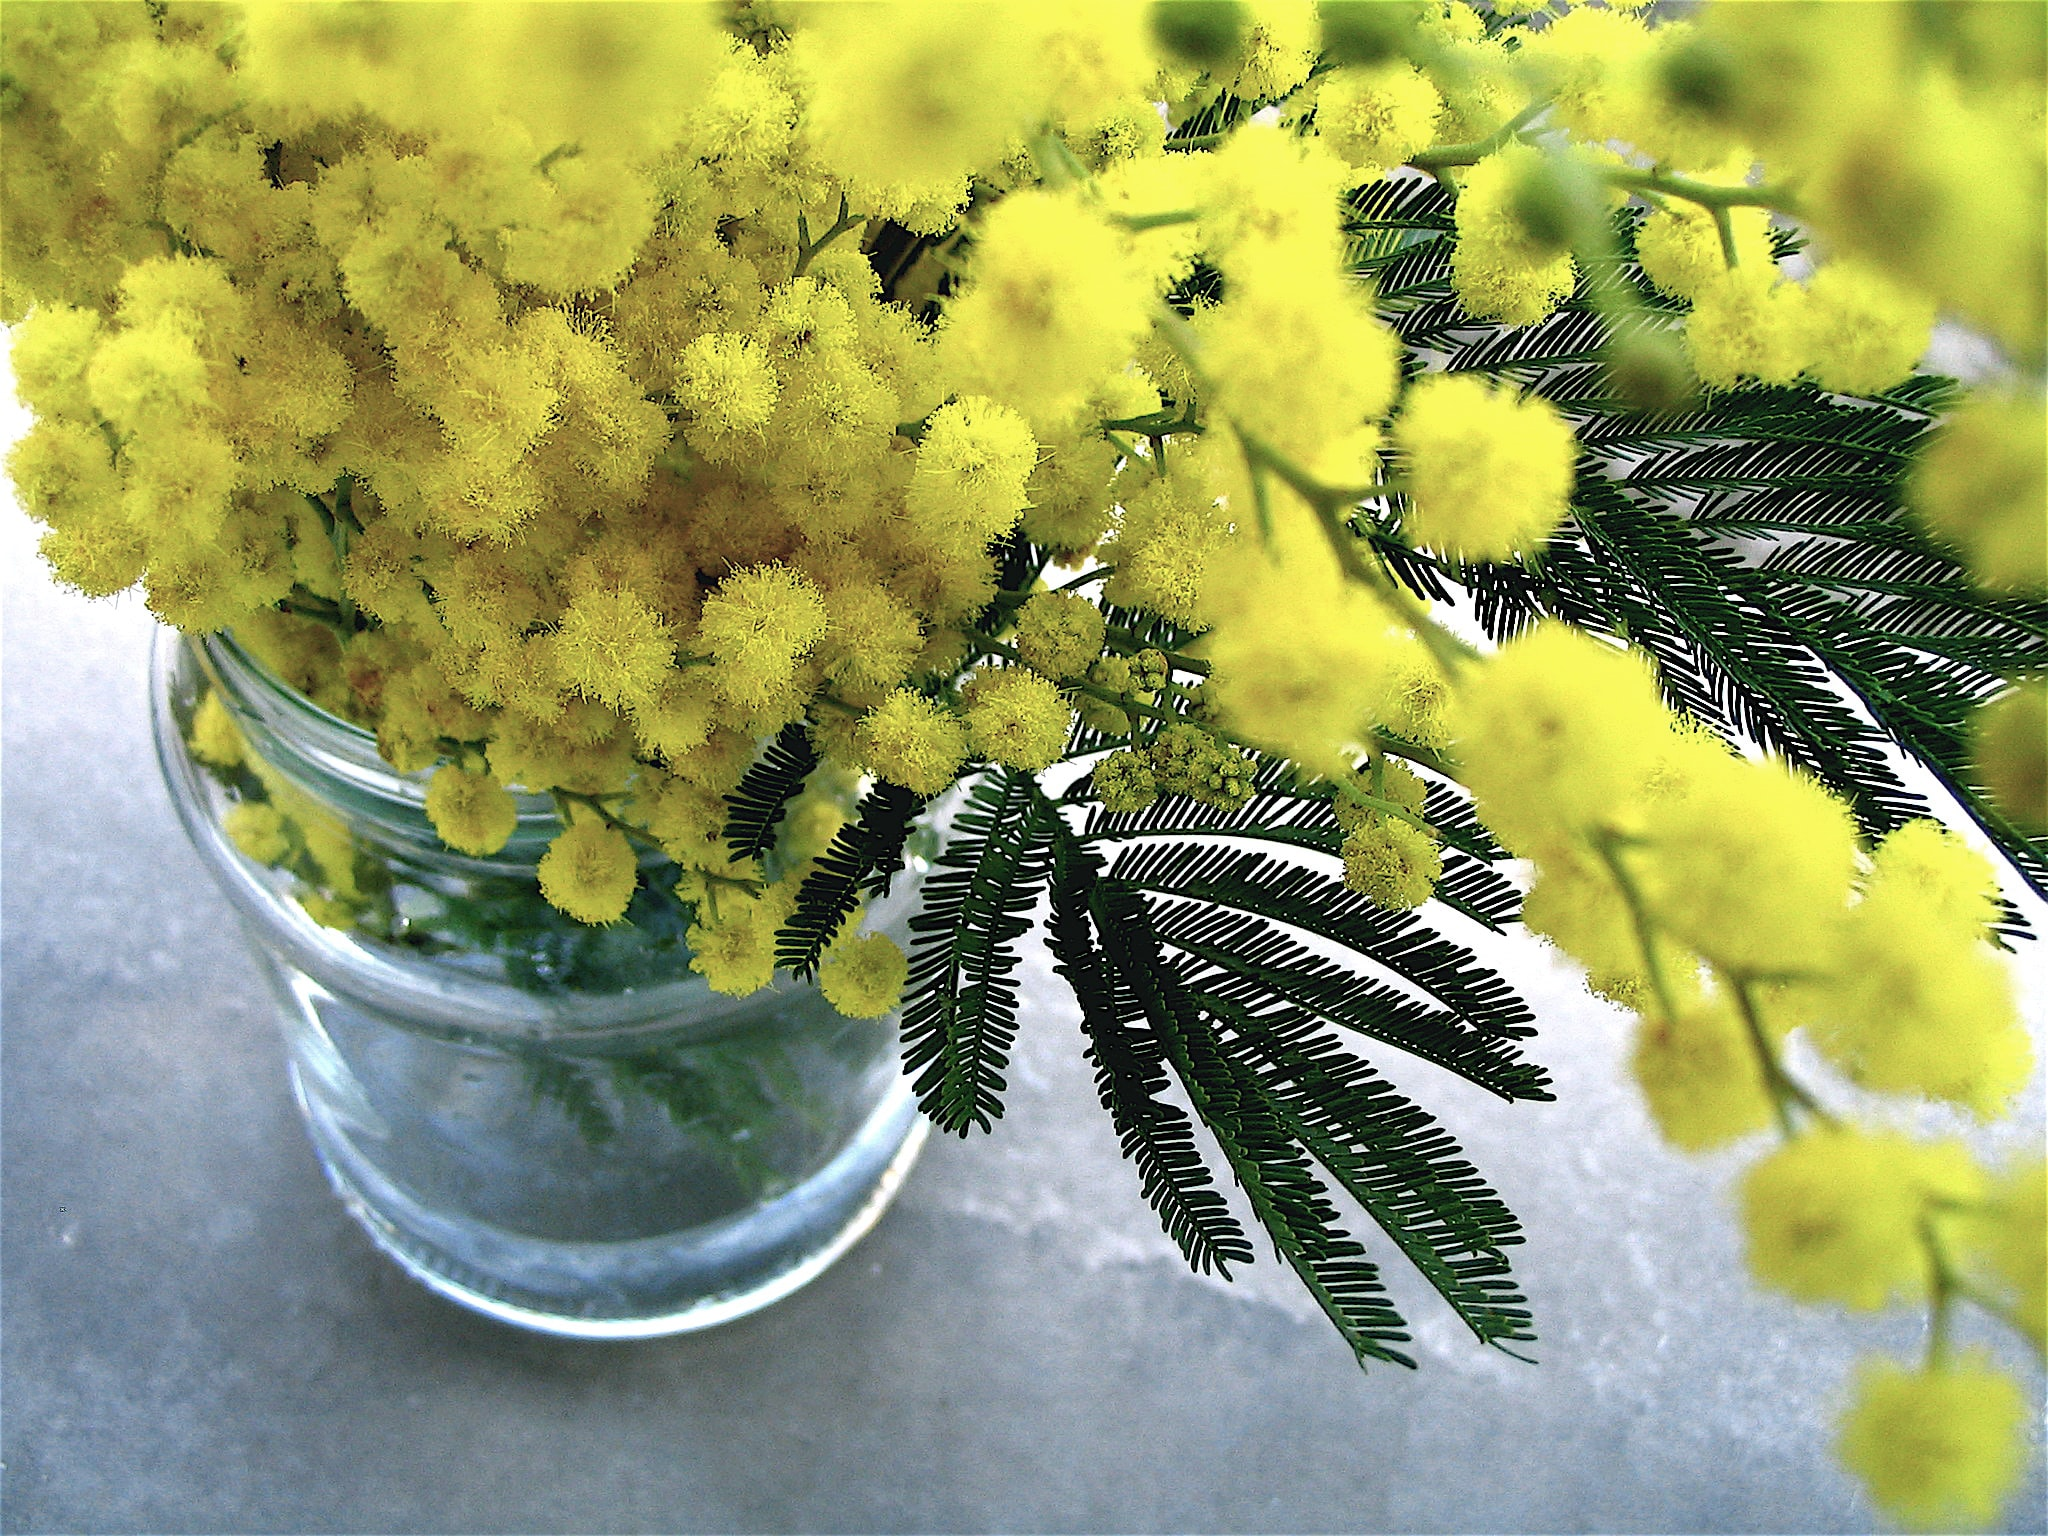 Close-up of a glass jar with rich yellow flowers